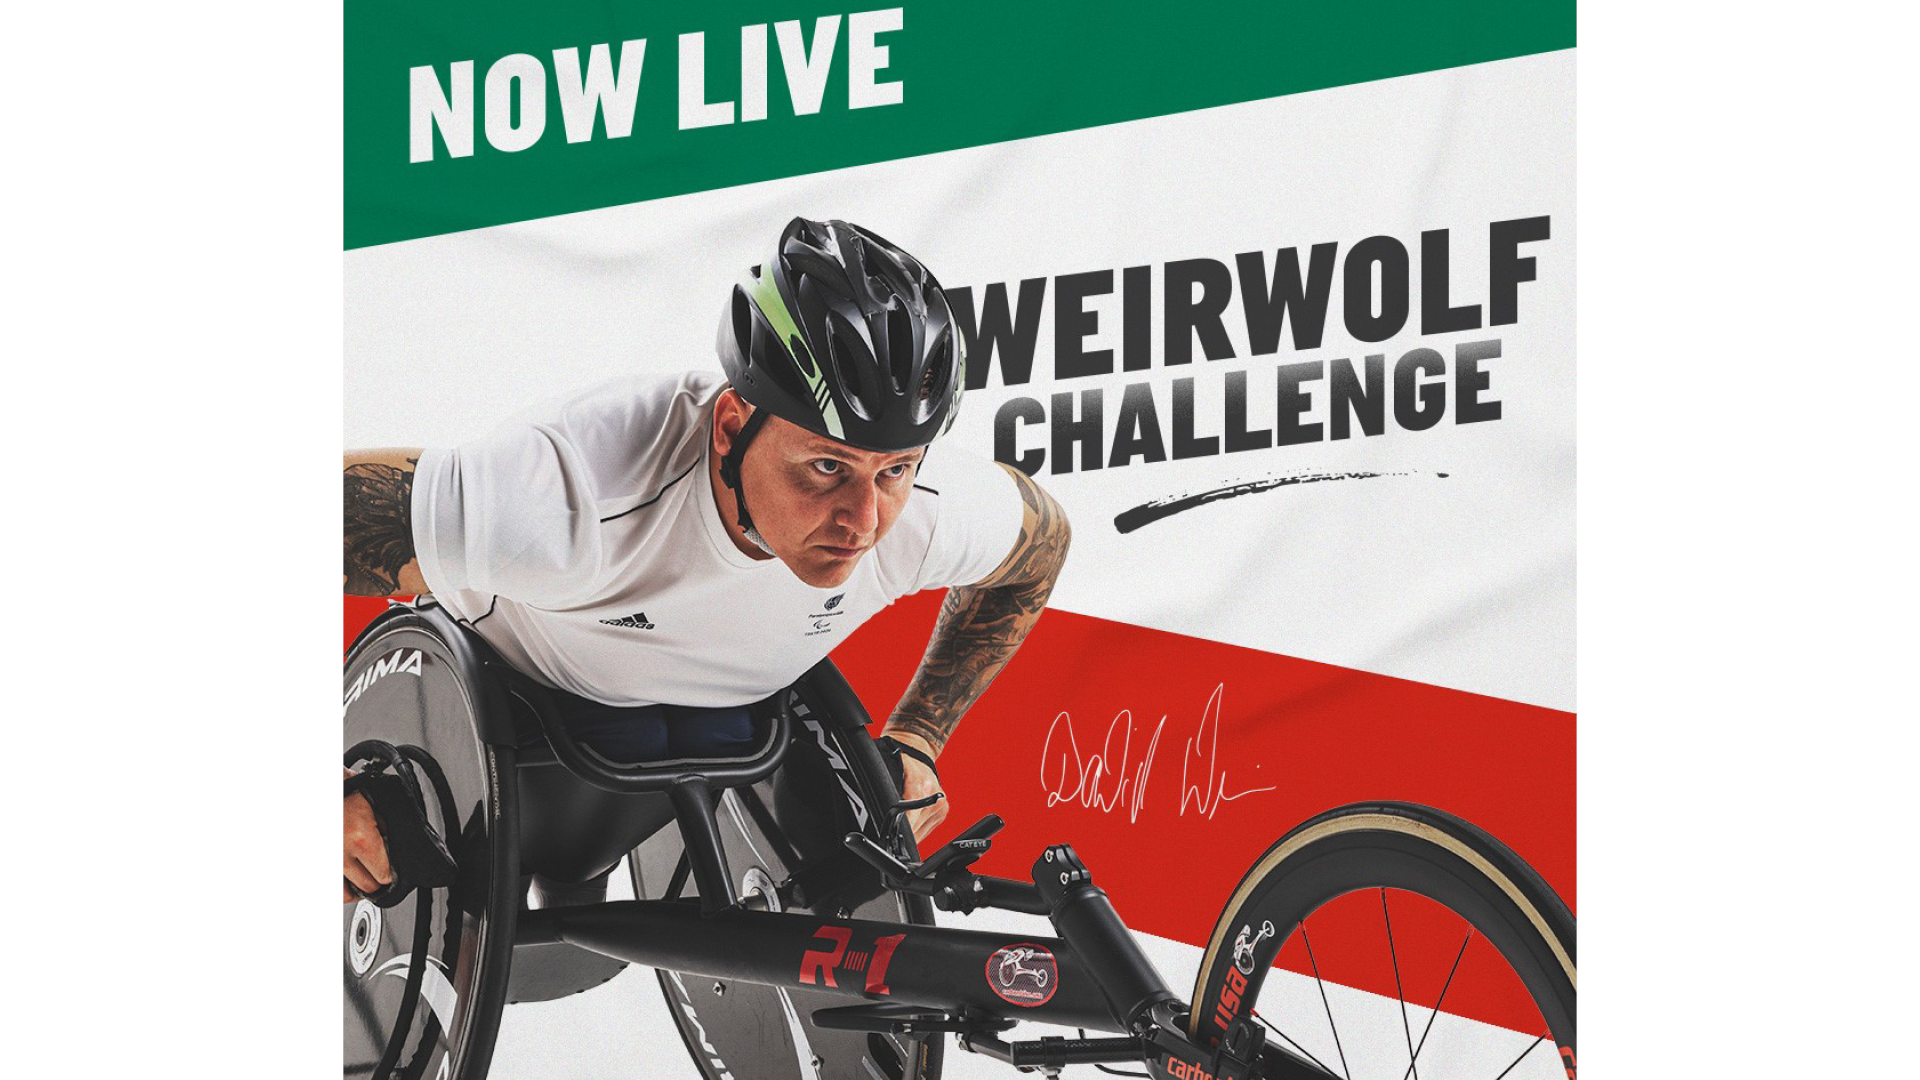 Papa John's teams up with ParalympicsGB athlete ambassador David Weir to launch 'Weirwolf Challenge'